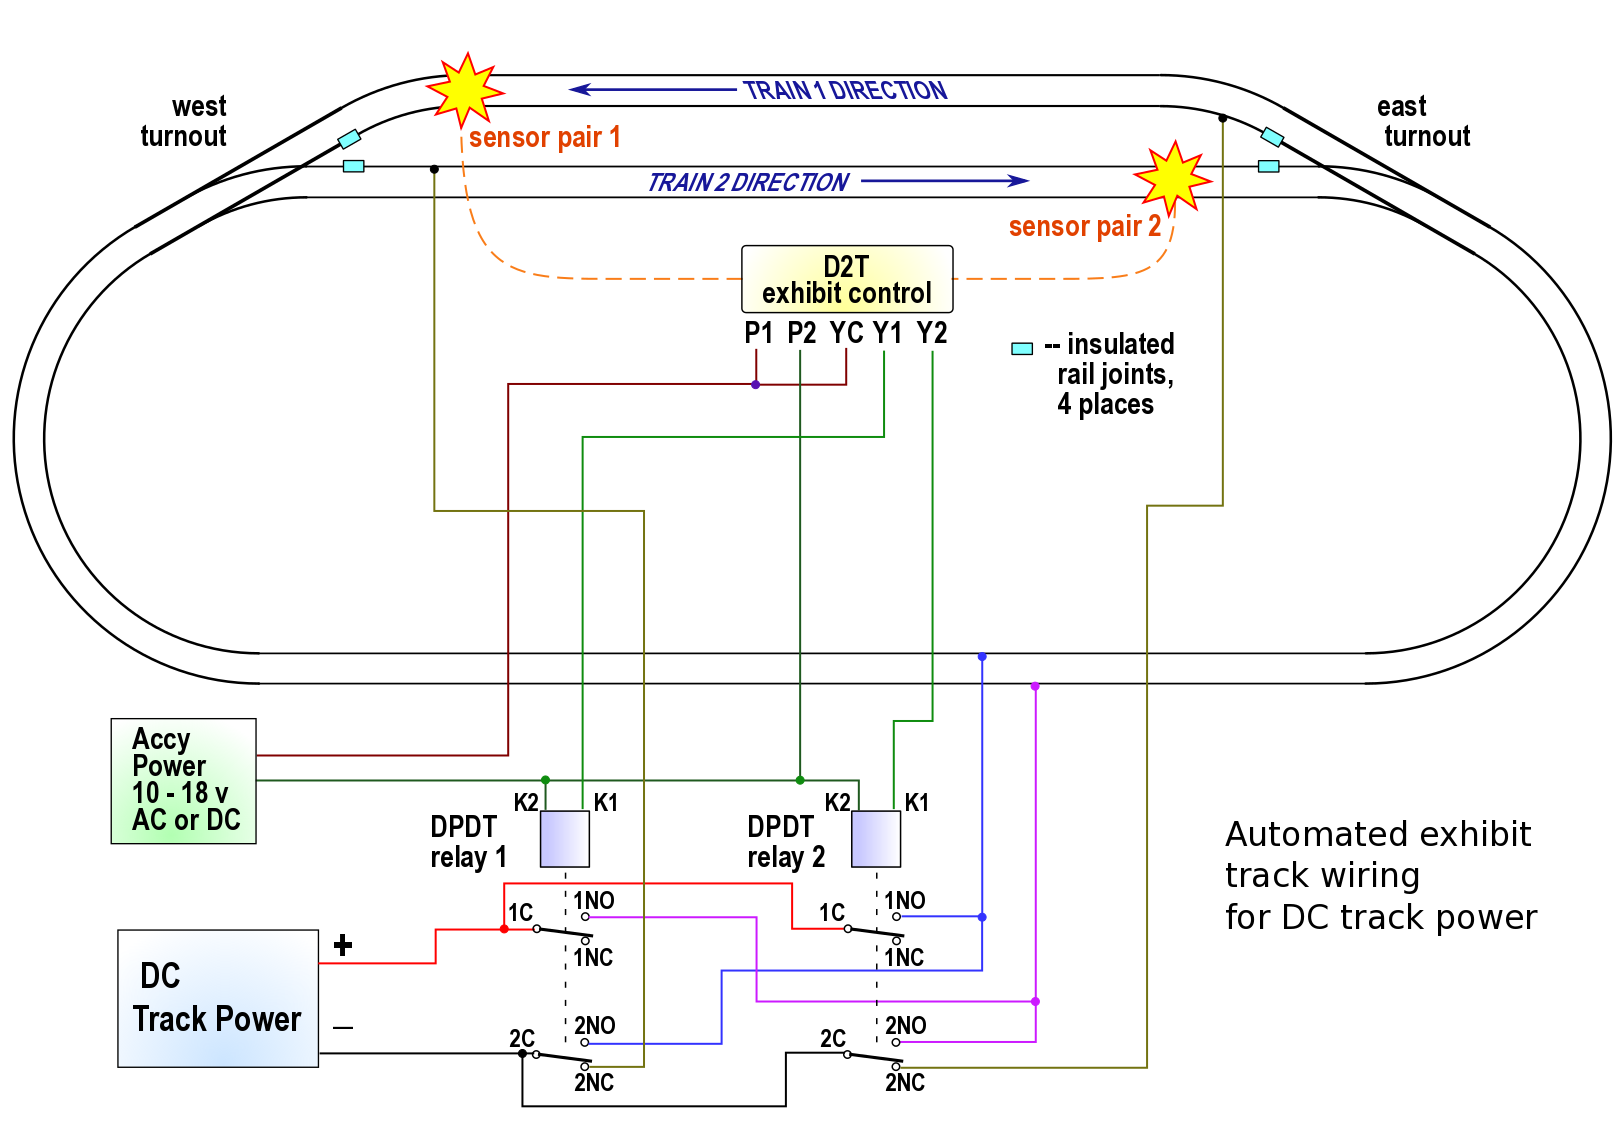 kato wiring diagrams wiring diagram go kato ho track wiring manual e book kato wiring diagrams [ 1620 x 1140 Pixel ]